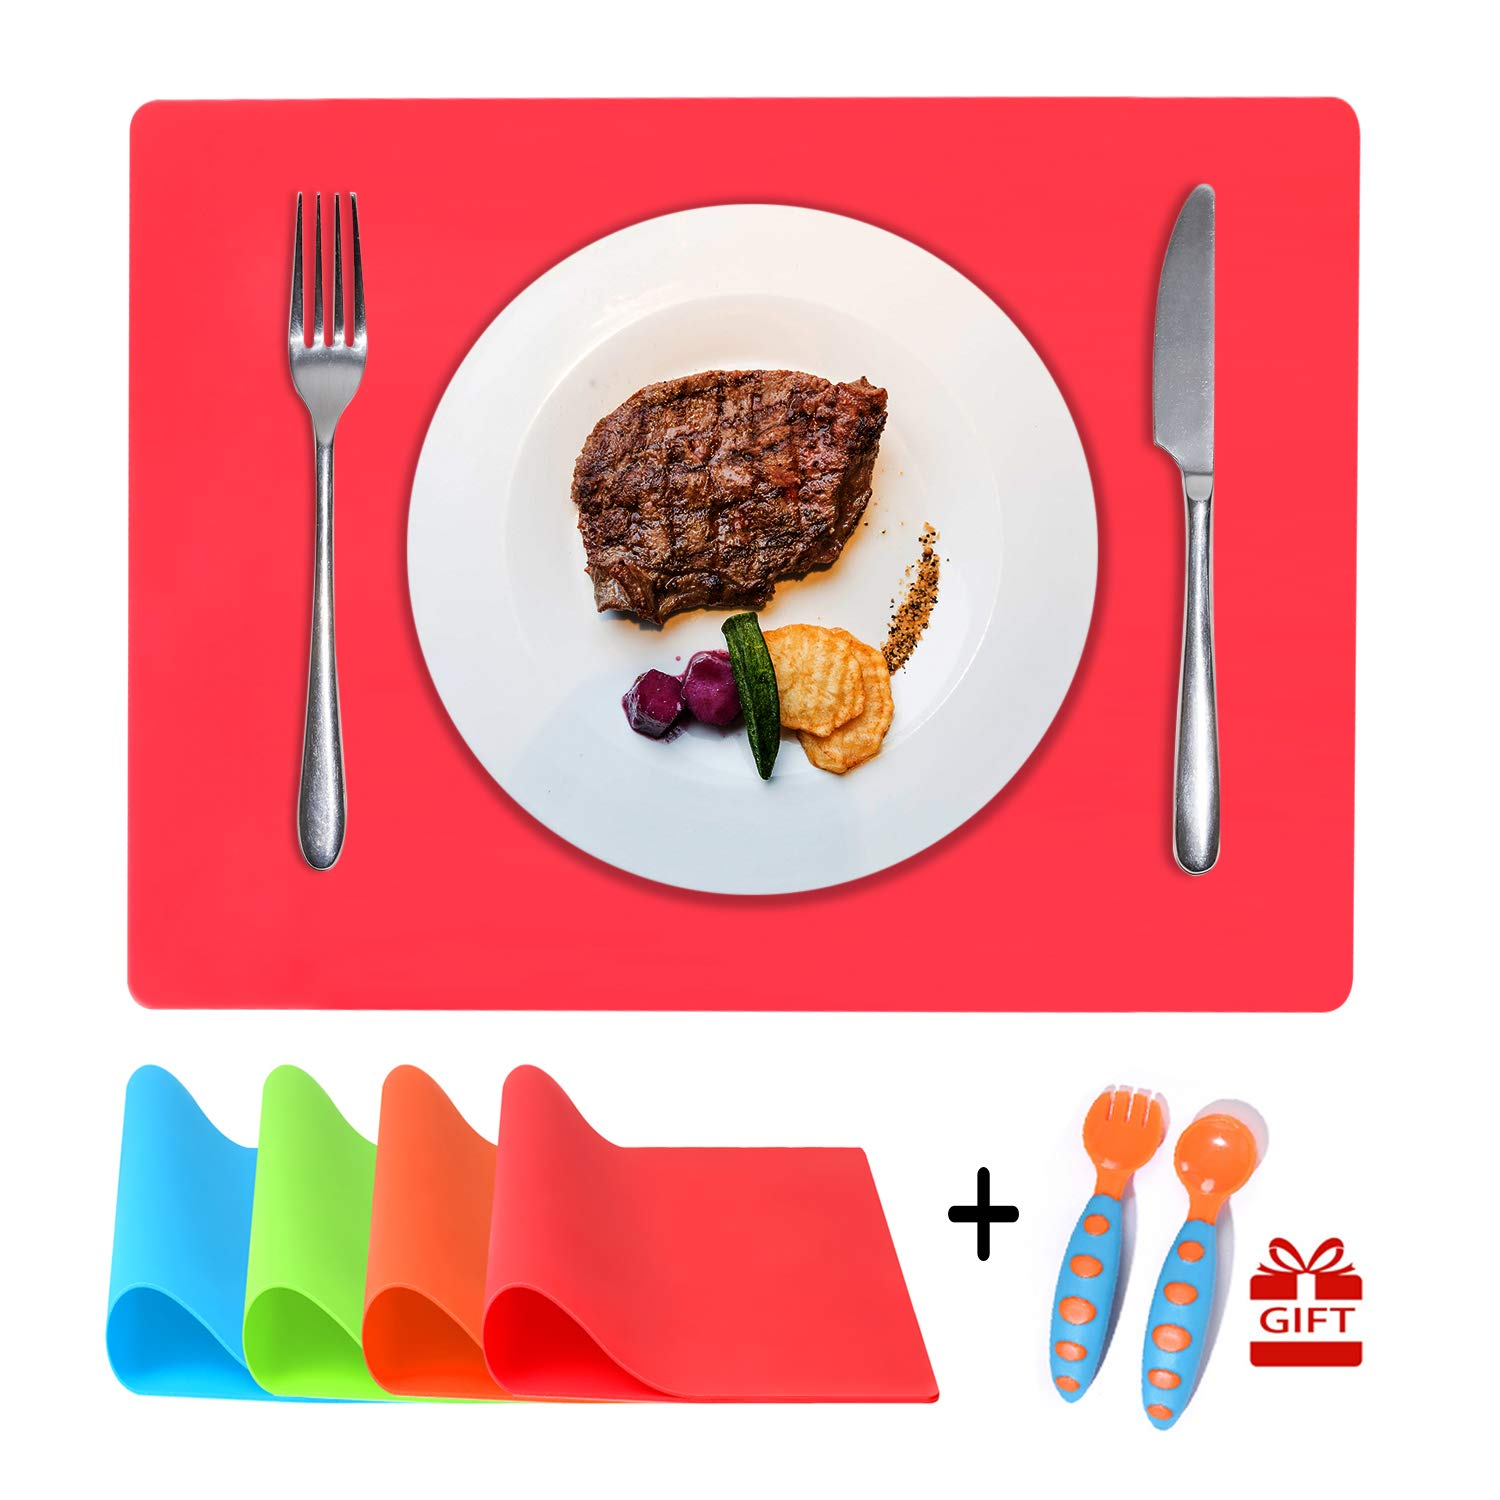 Multi Color Kids Placemats, Childrens Placemats Bonus Spoon & Fork (16 x 12 Inches), Dining Table Mat for Babies Toddlers and Kids, Non Slip, Waterproof, Easy to Clean, Set of 4 by Wee me